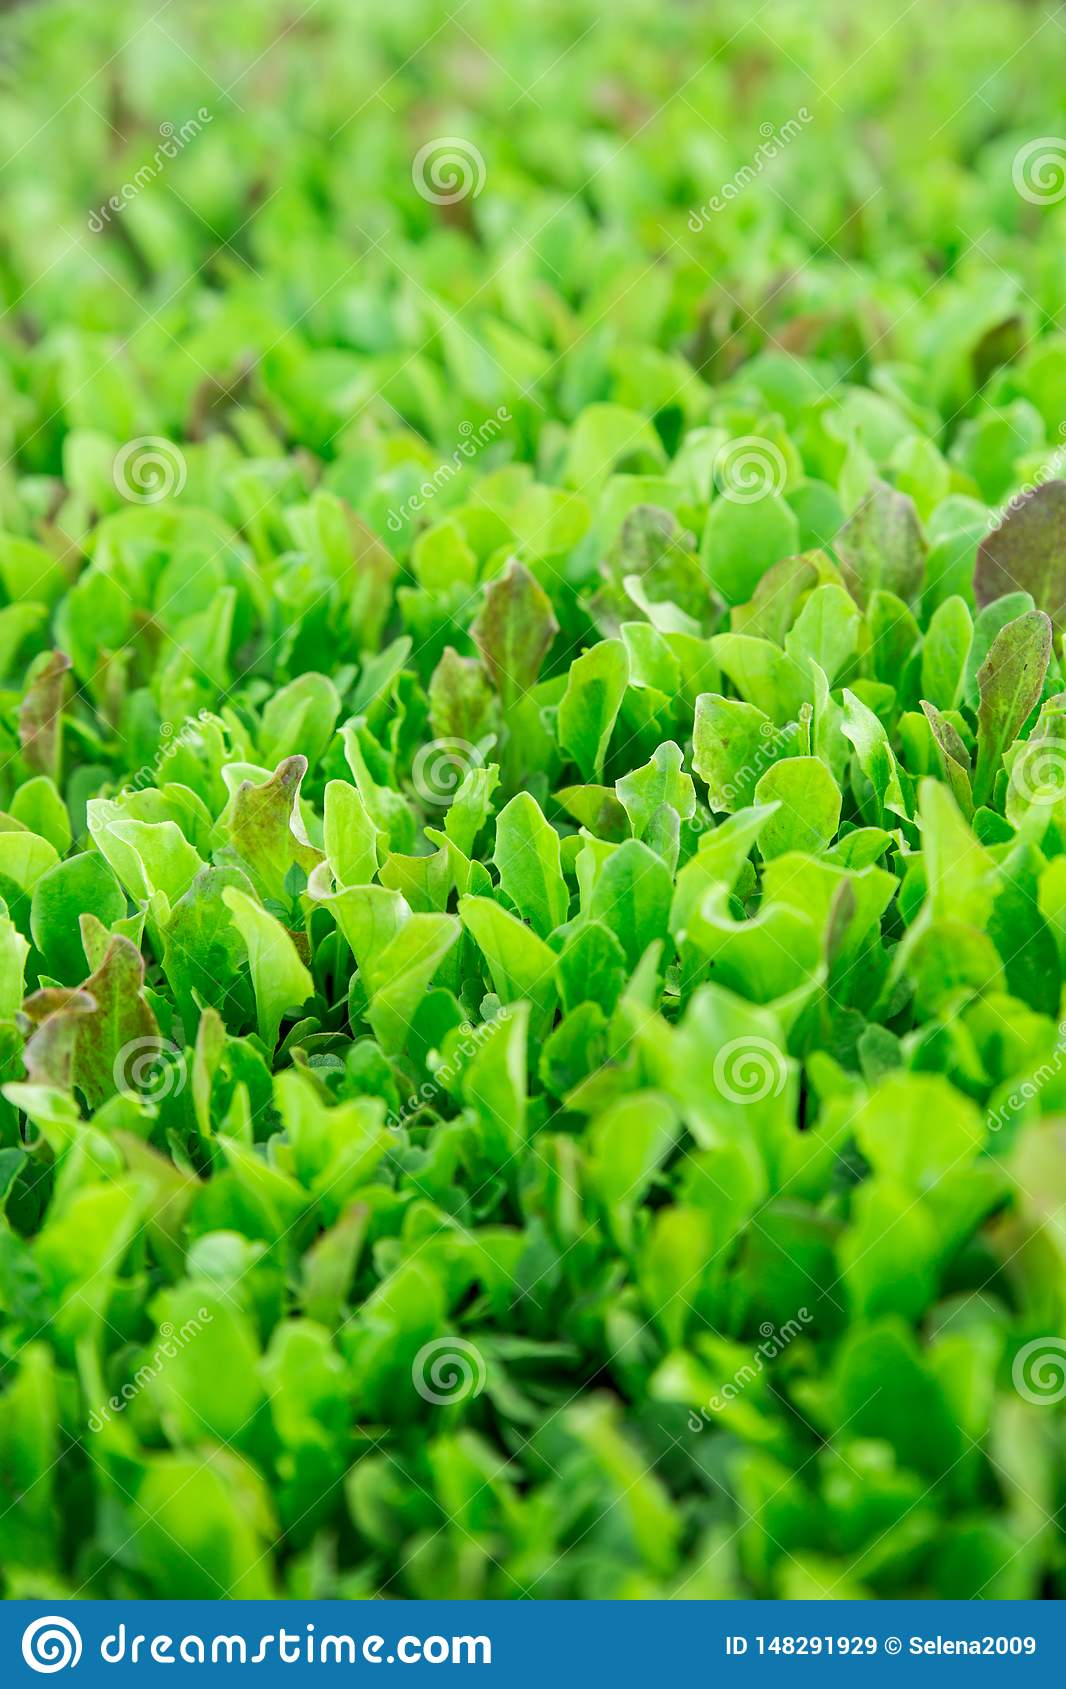 Green lettuce leaves. Fresh, young and tender lettuce leaves grow in the garden. A solid green carpet. Bright green